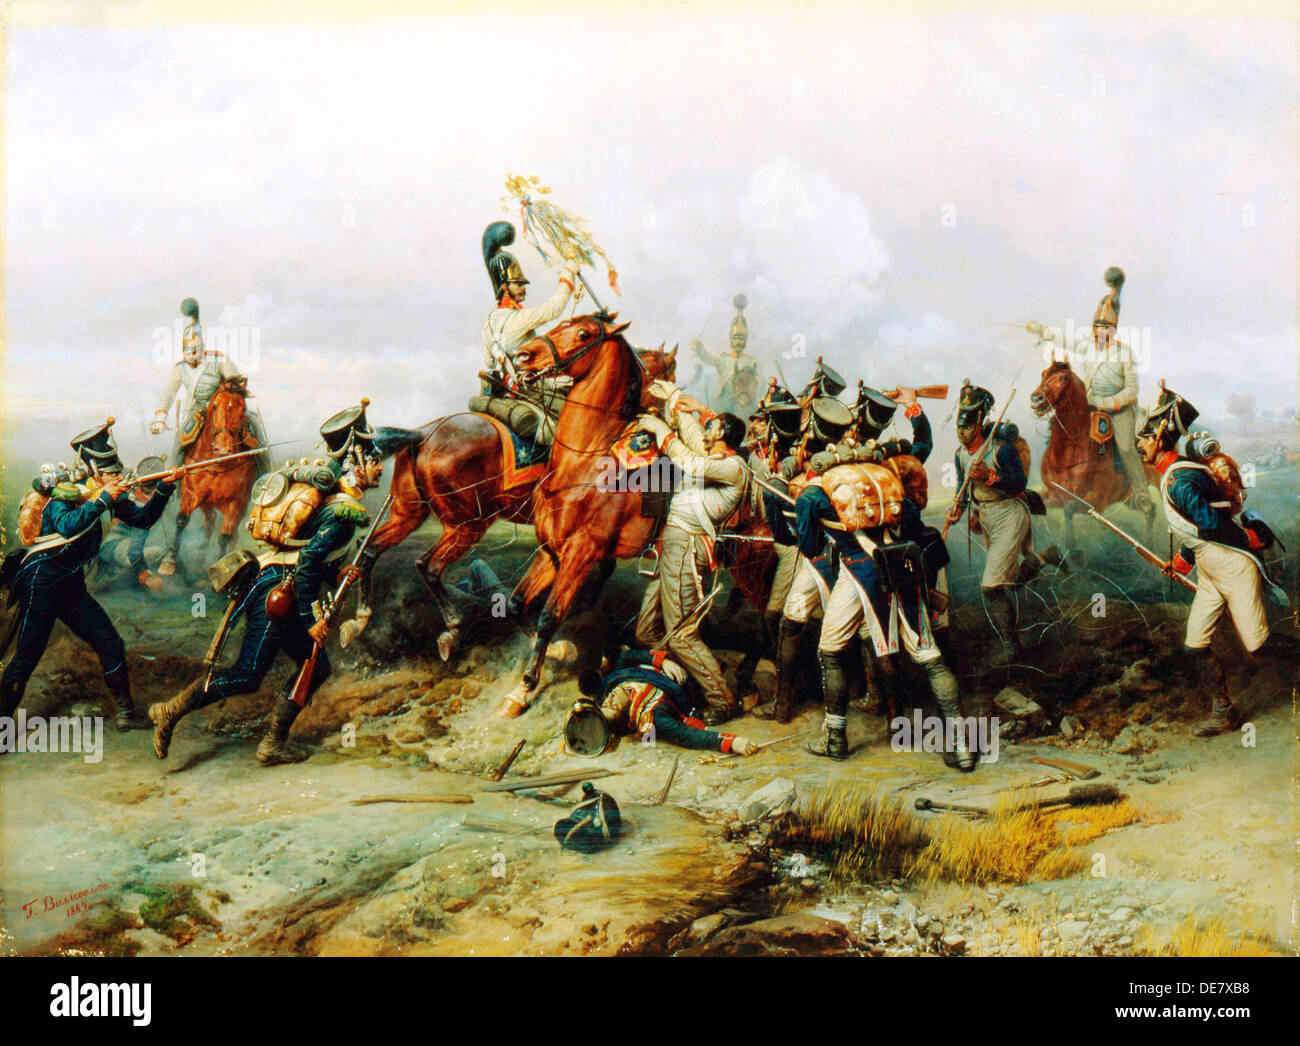 The Exploit of the Mounted regiment in the Battle of Austerlitz', 1884. - Stock Image